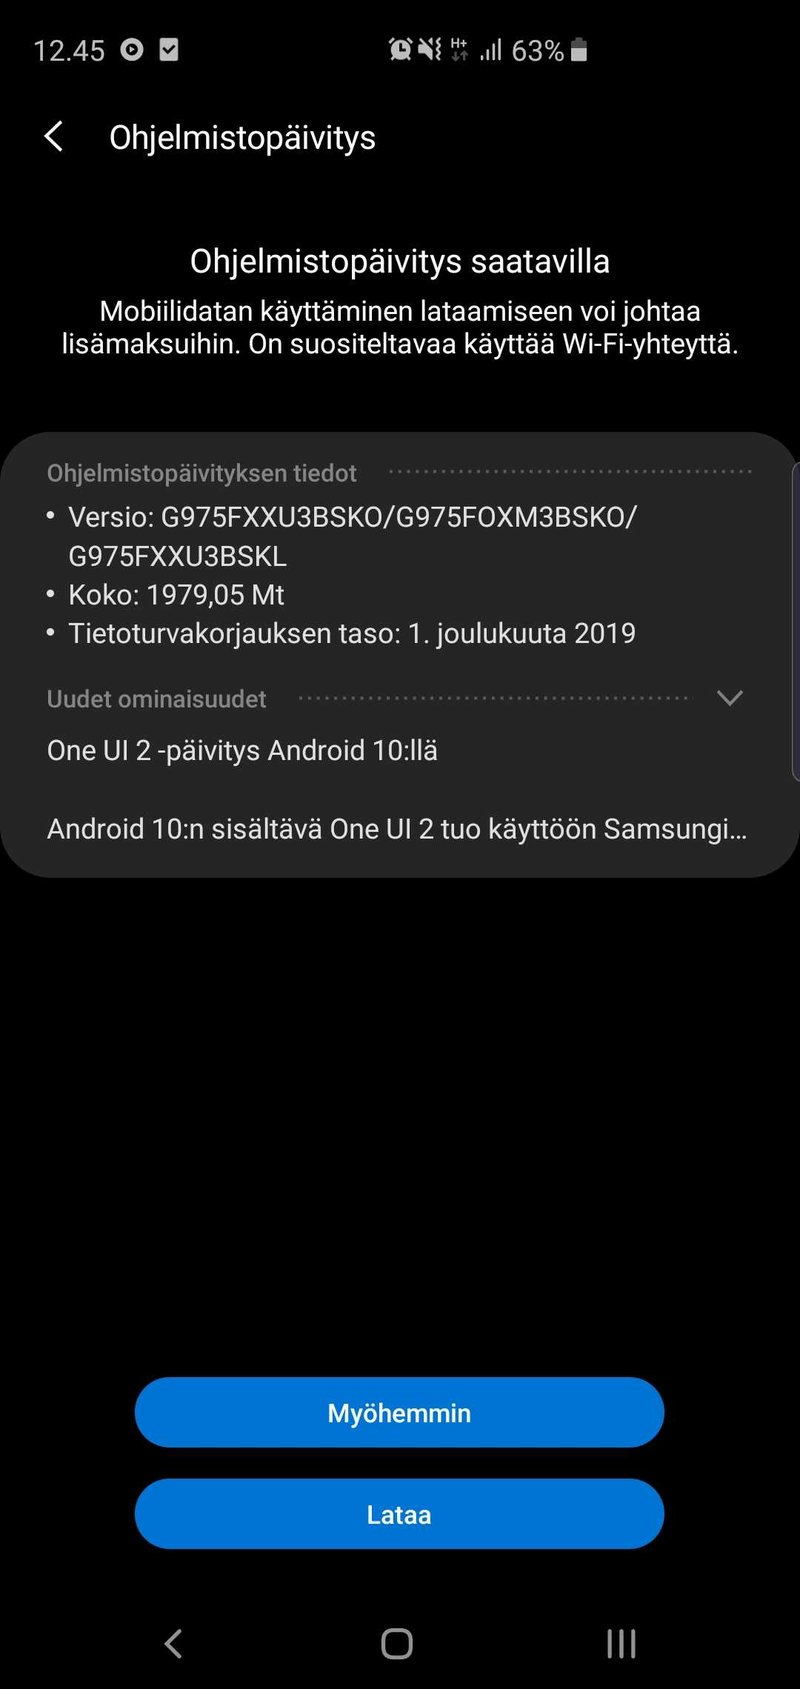 Android 10 on saapunut Galaxy S10 puhelimille